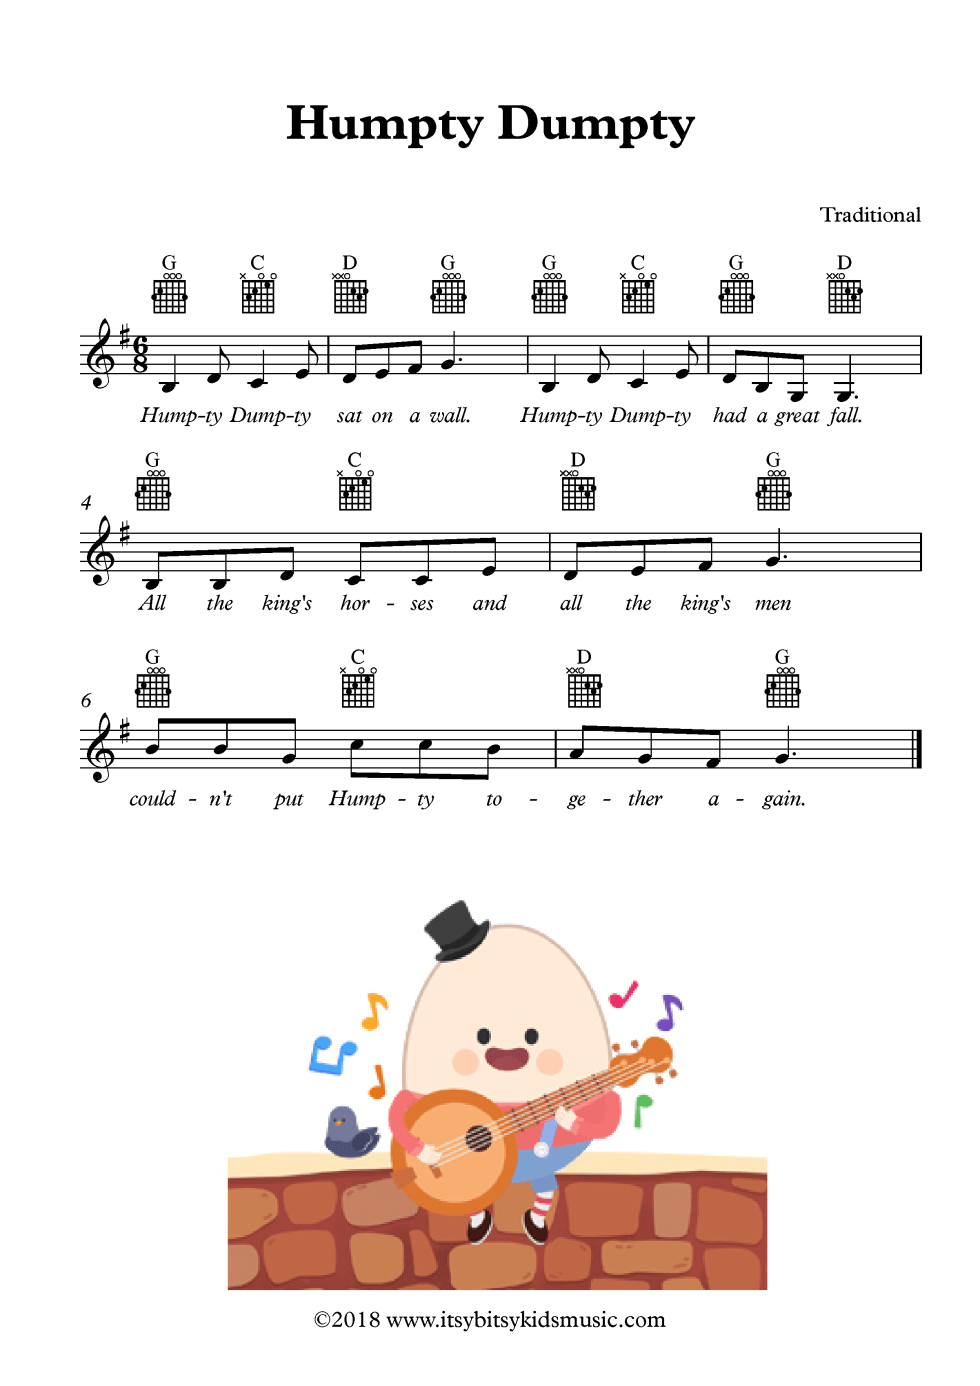 Humpty Dumpty sheet music with chords